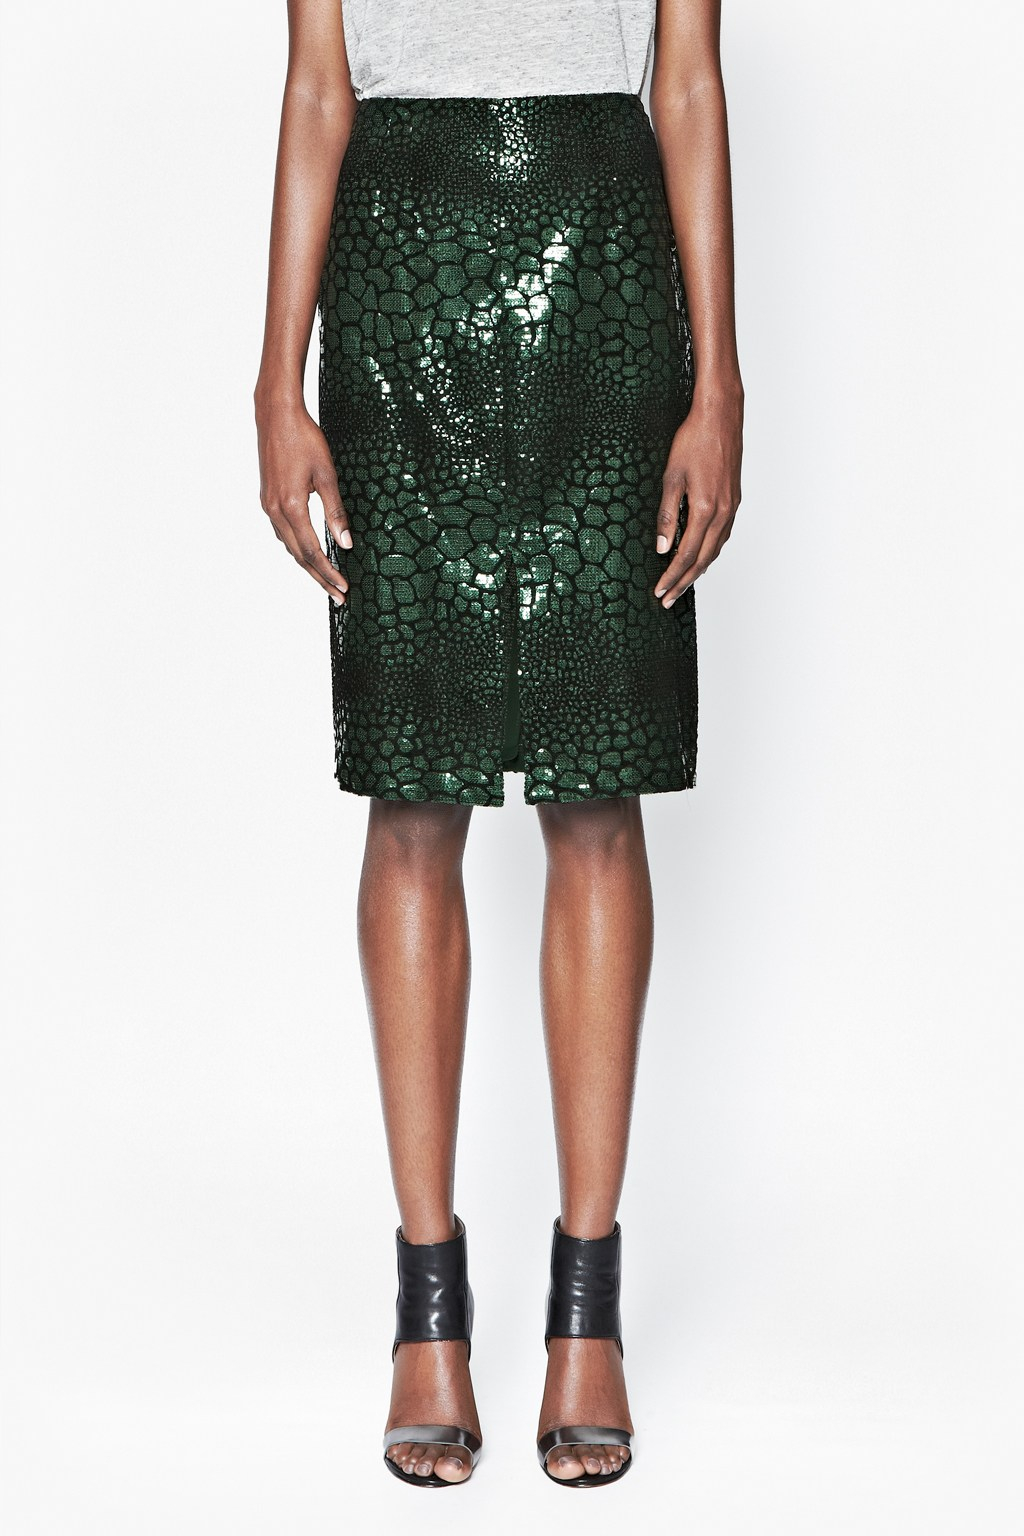 e44a8d89b French Connection Fast Croc Flock Skirt in Green - Lyst